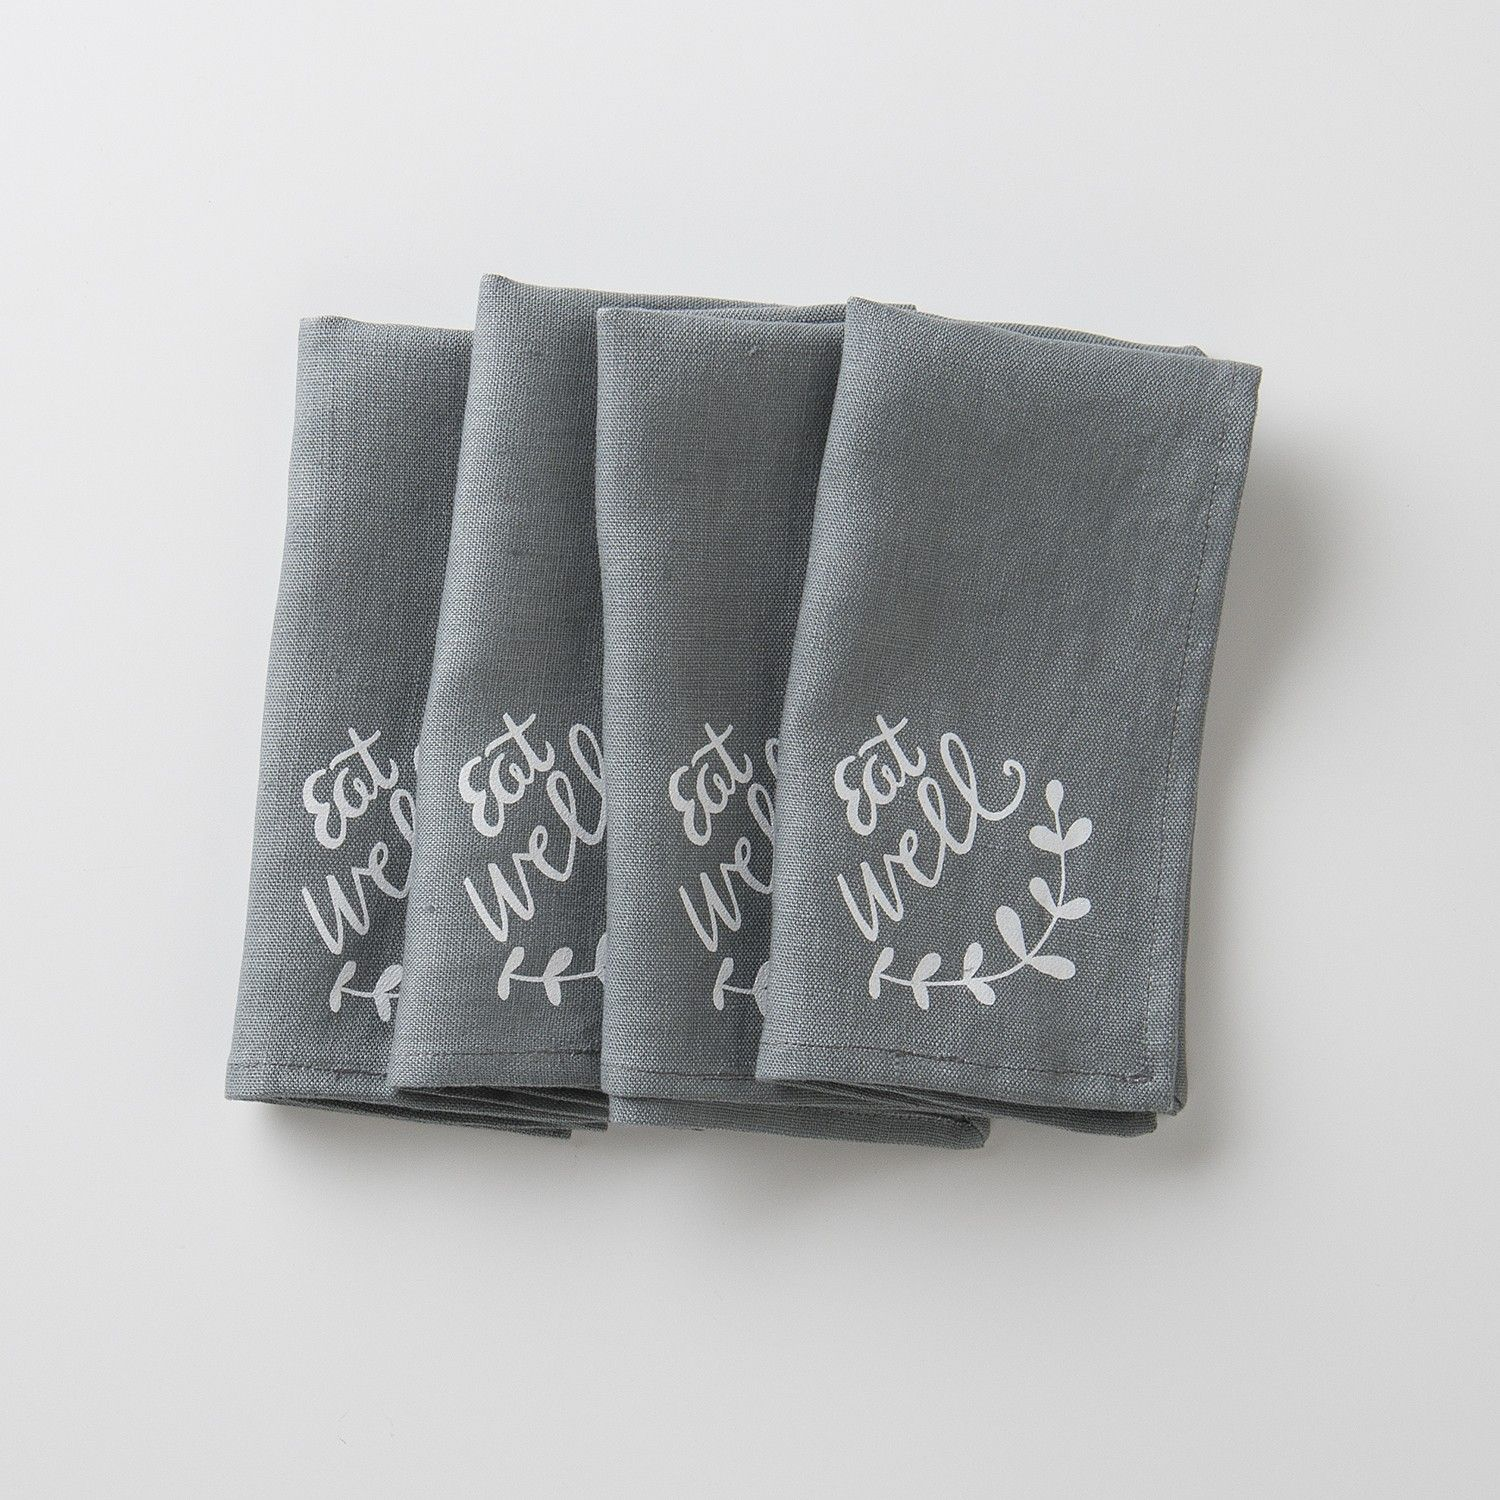 Eat Well Printed Napkin | Linens | Dining + Kitchen